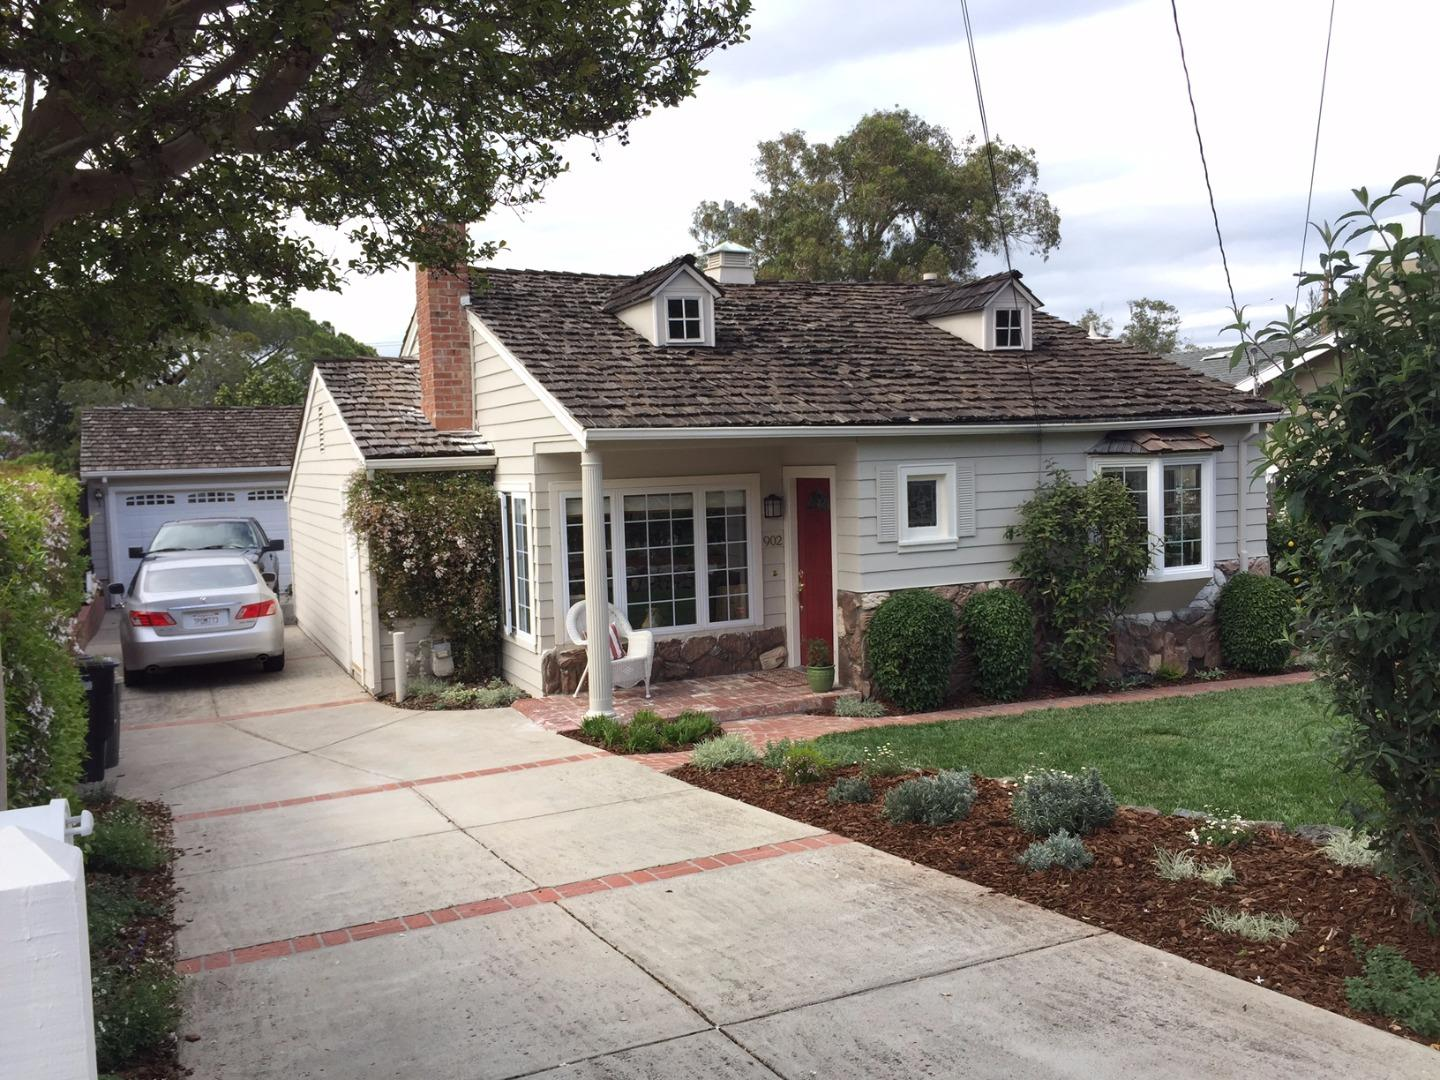 Additional photo for property listing at 902 Ruth Ave  BELMONT, CALIFORNIA 94002